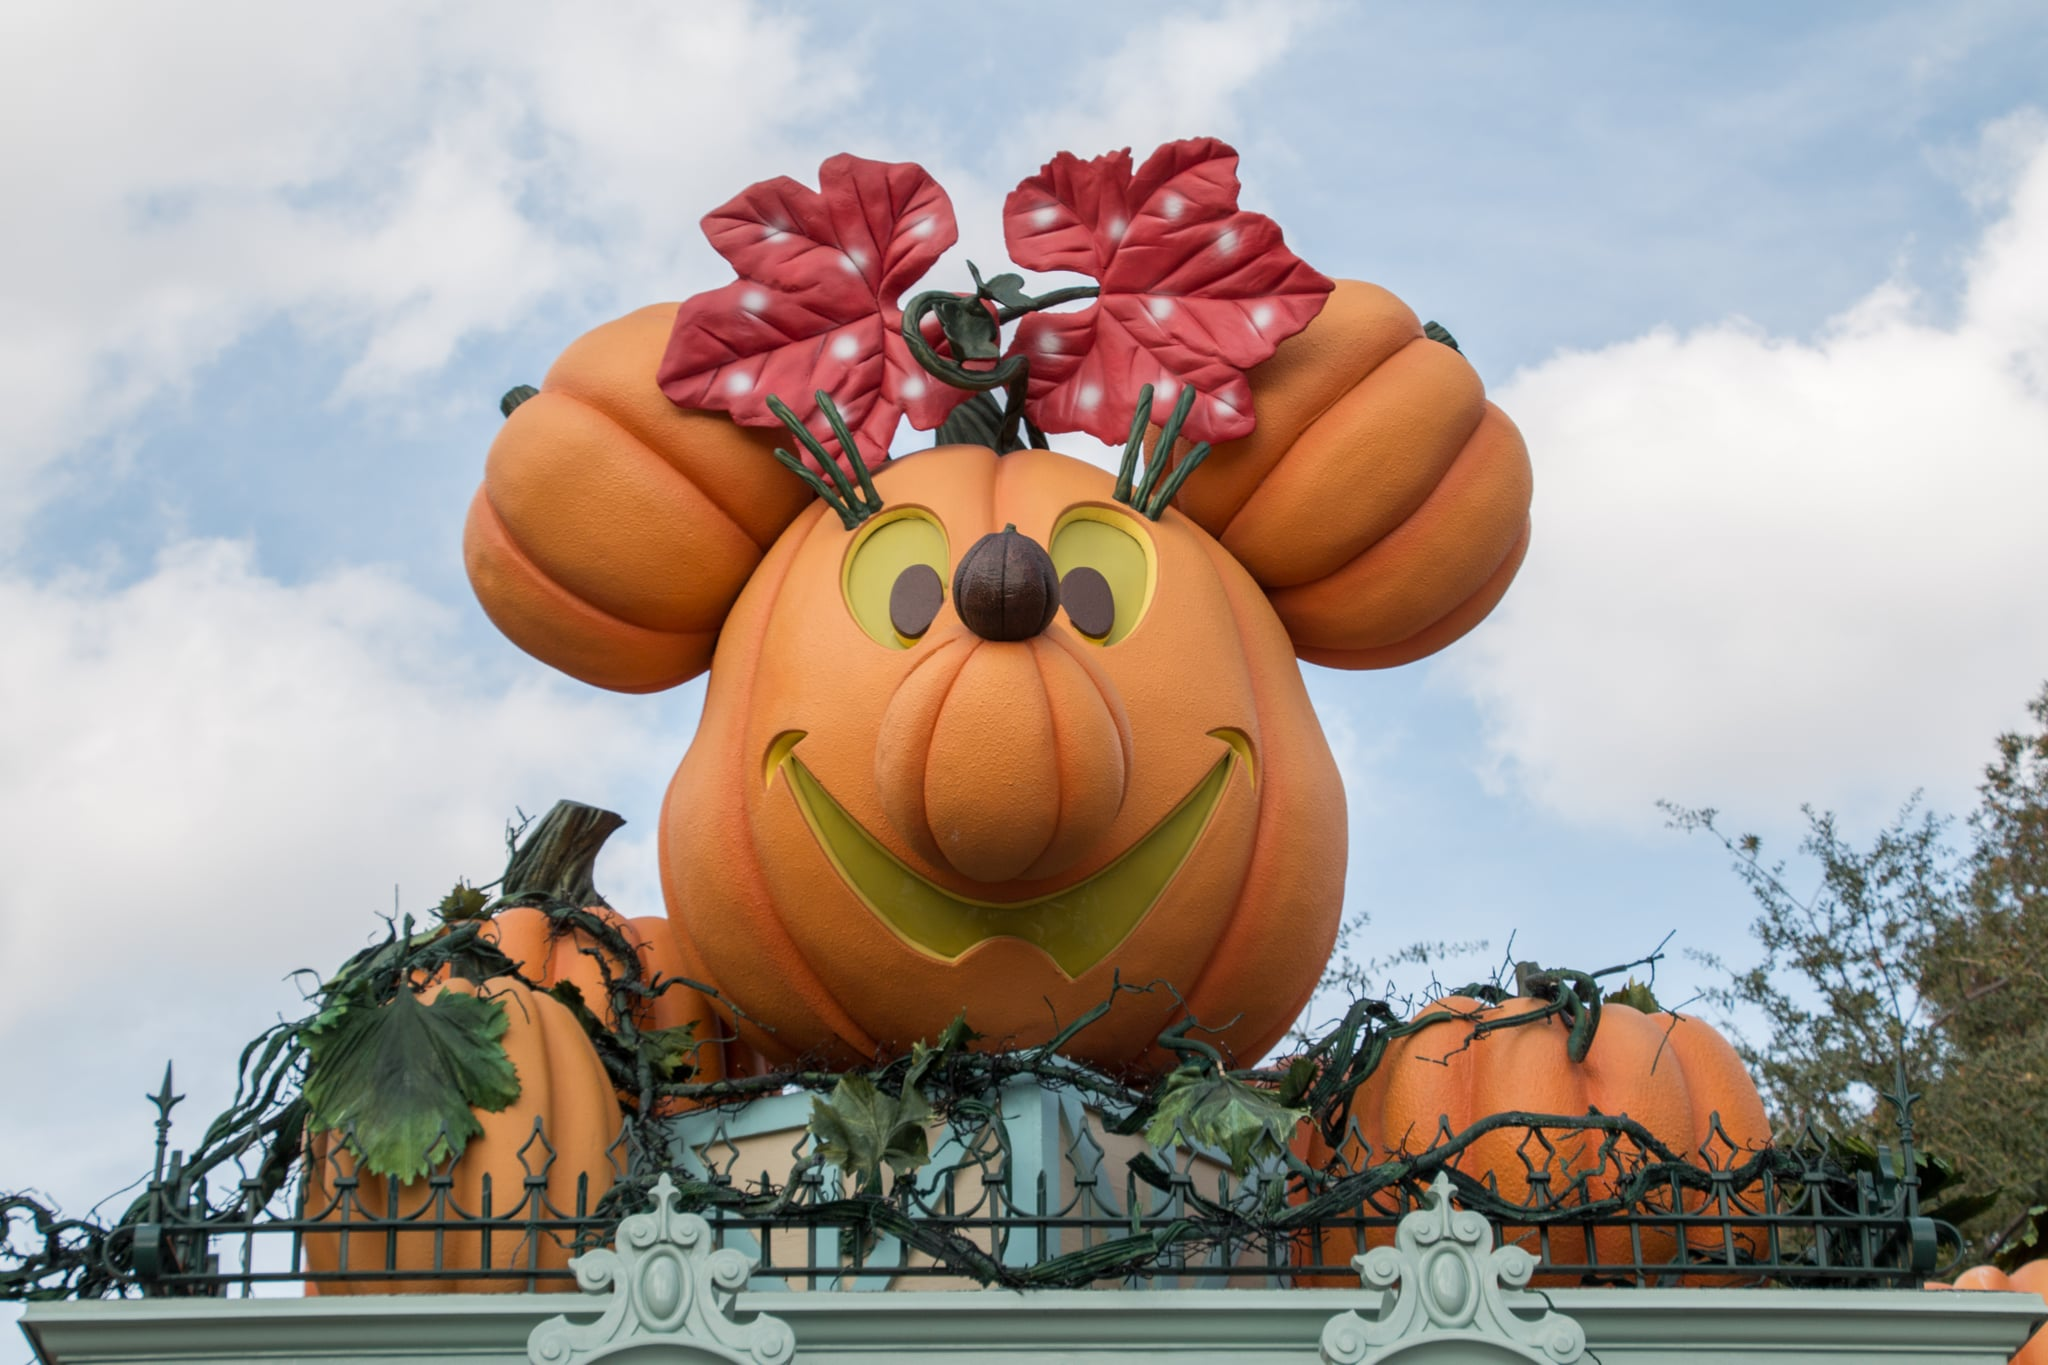 Disney Disneyland Halloween Dates 2017 | POPSUGAR Smart Living